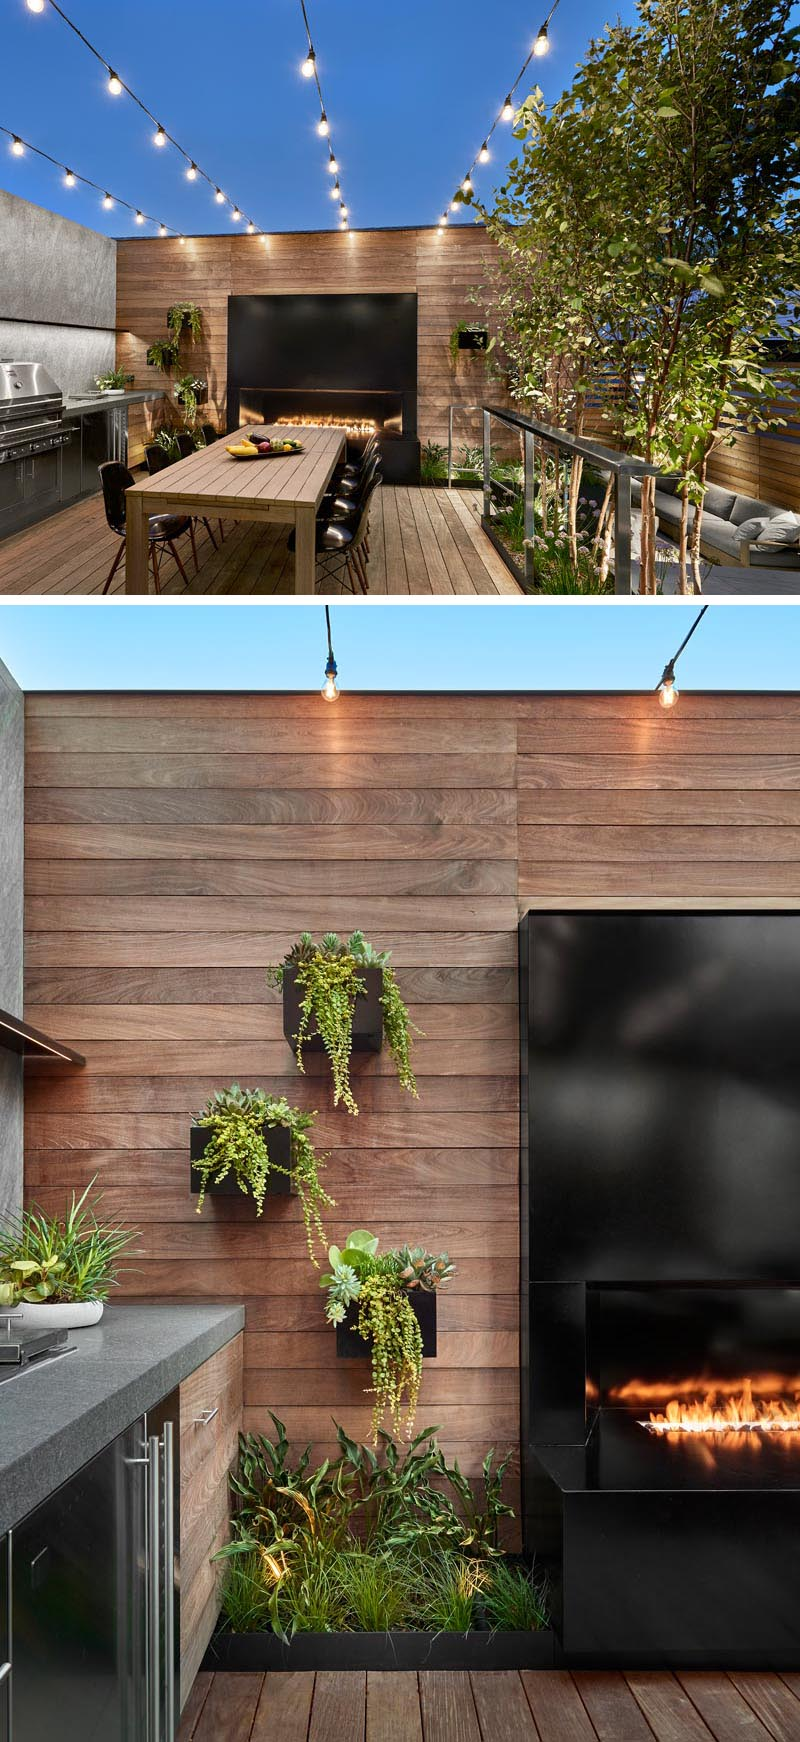 This modern outdoor dining area has a 7-ft linear fireplace with black steel surround, an artful array of cascading planter boxes filled with succulents, and overhead string lights. #OutdoorDining #BlackSteelFireplace #StringLights